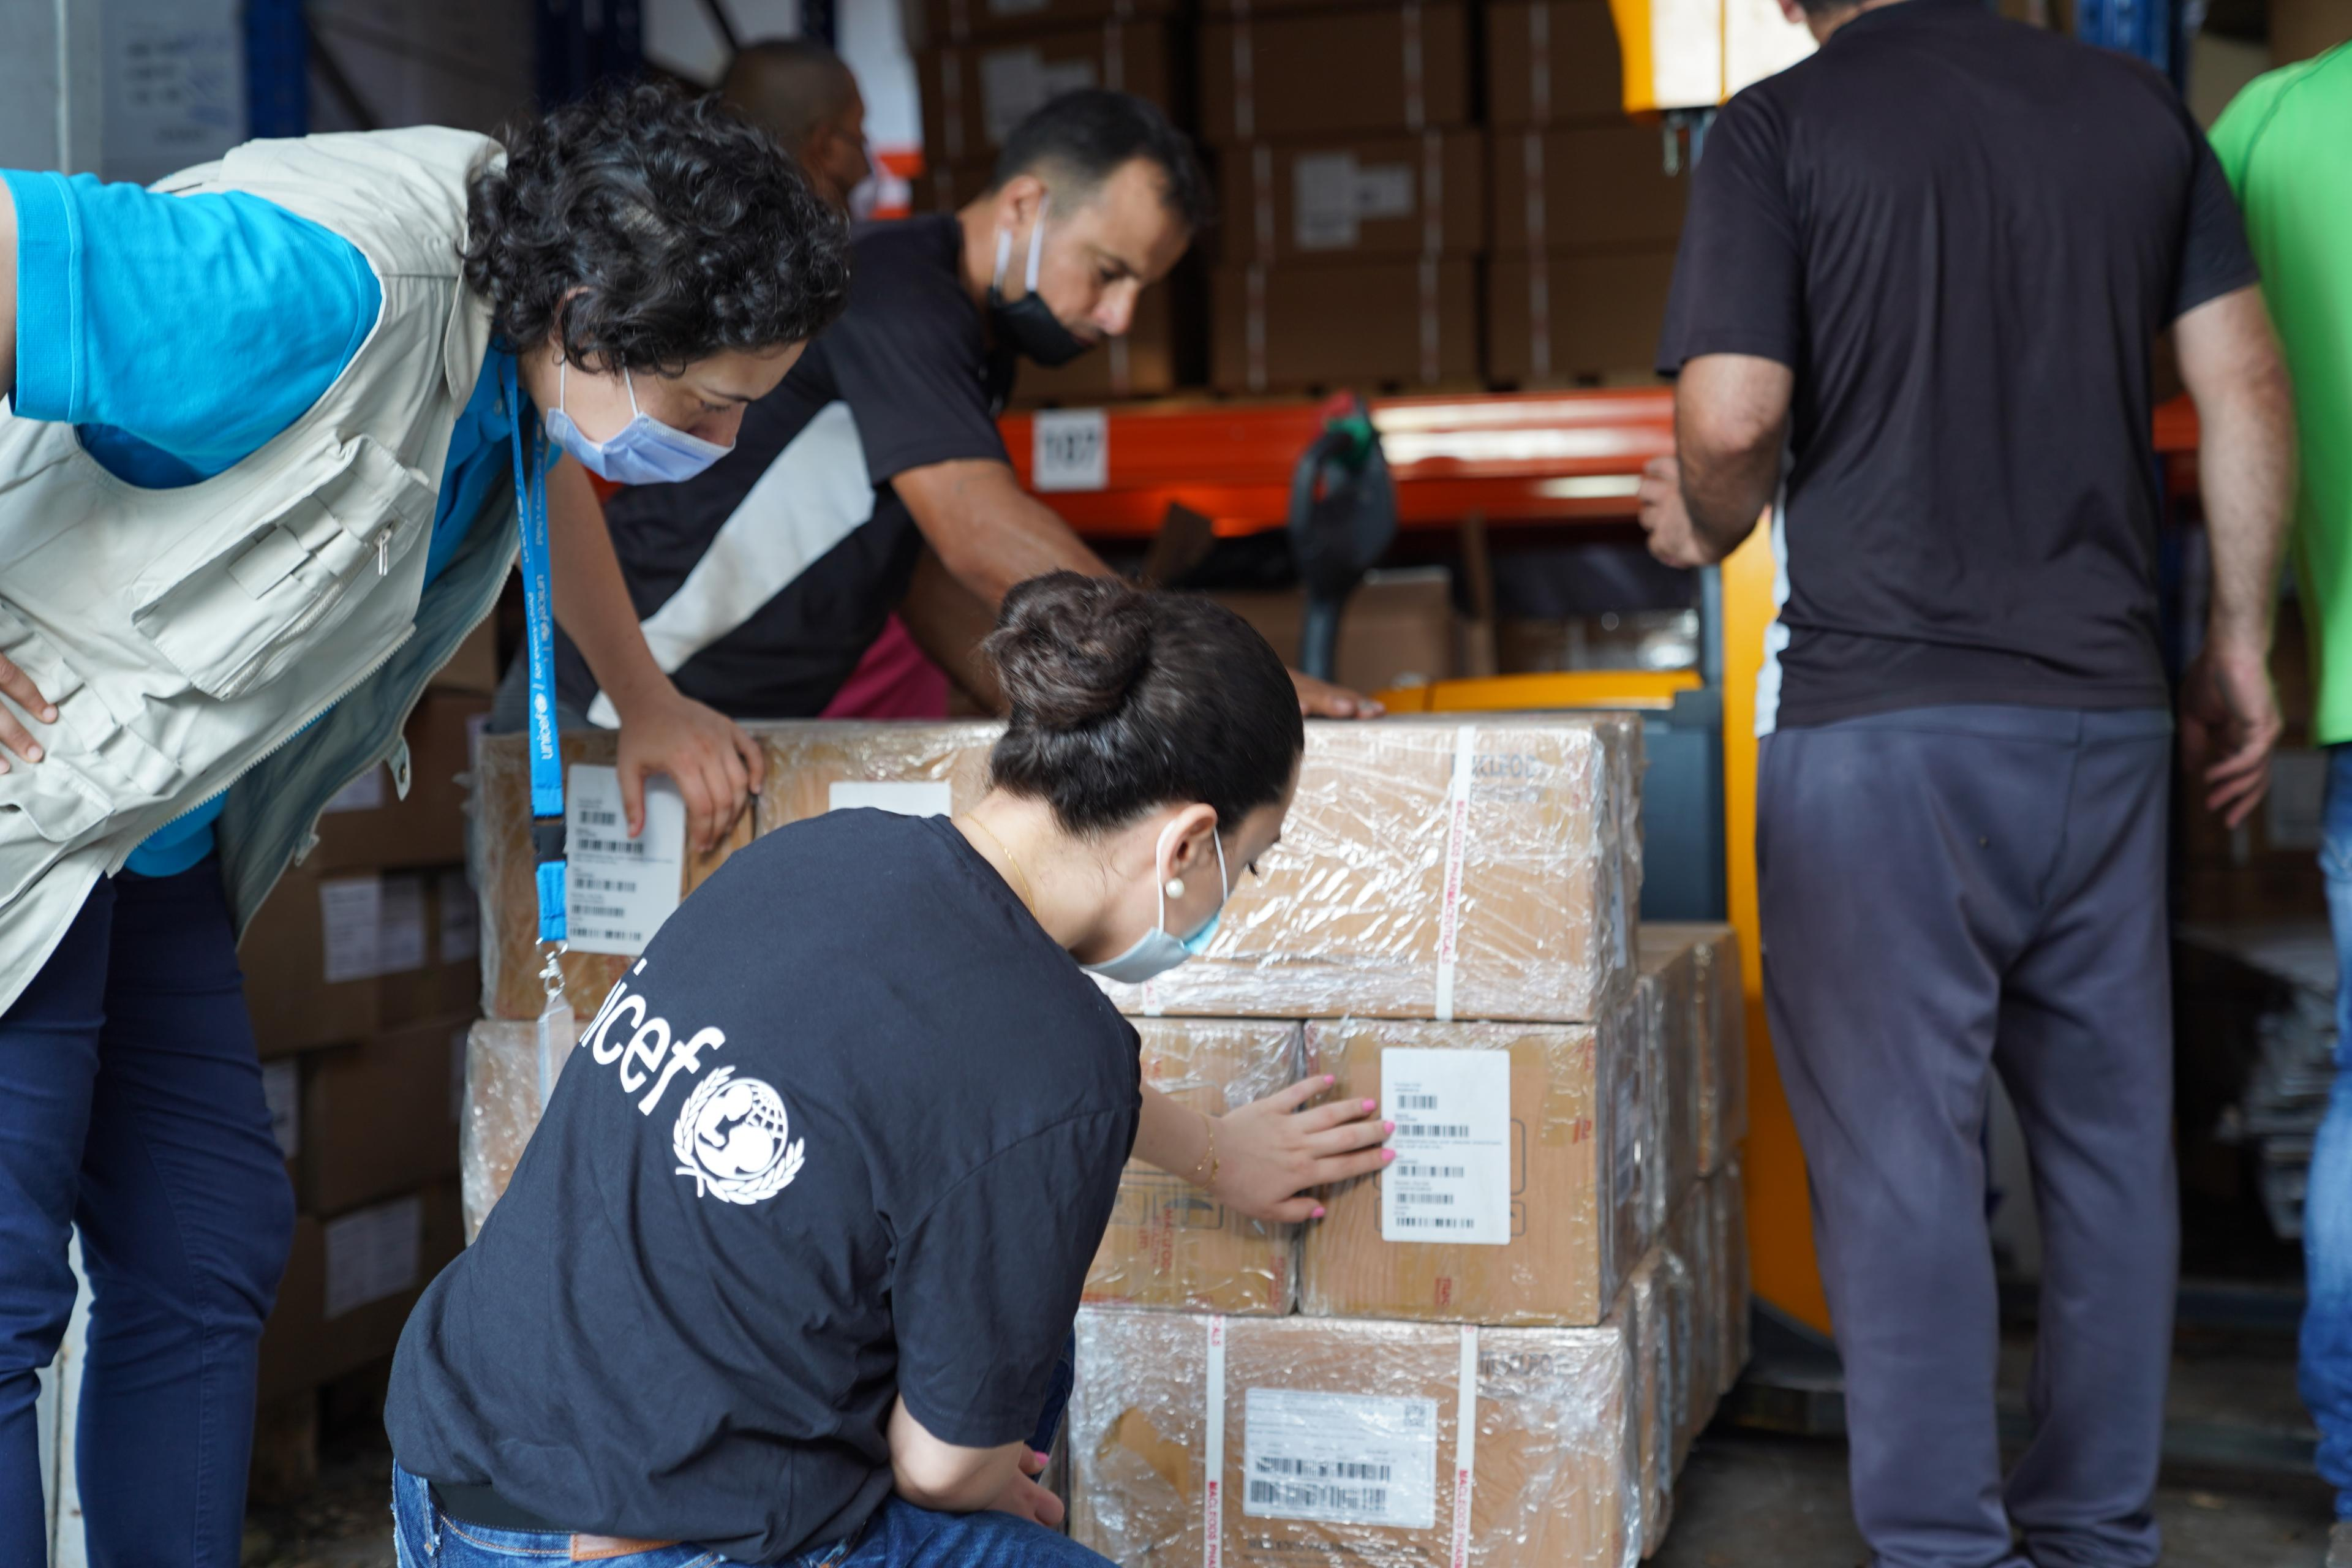 Beirut – UNICEF workers